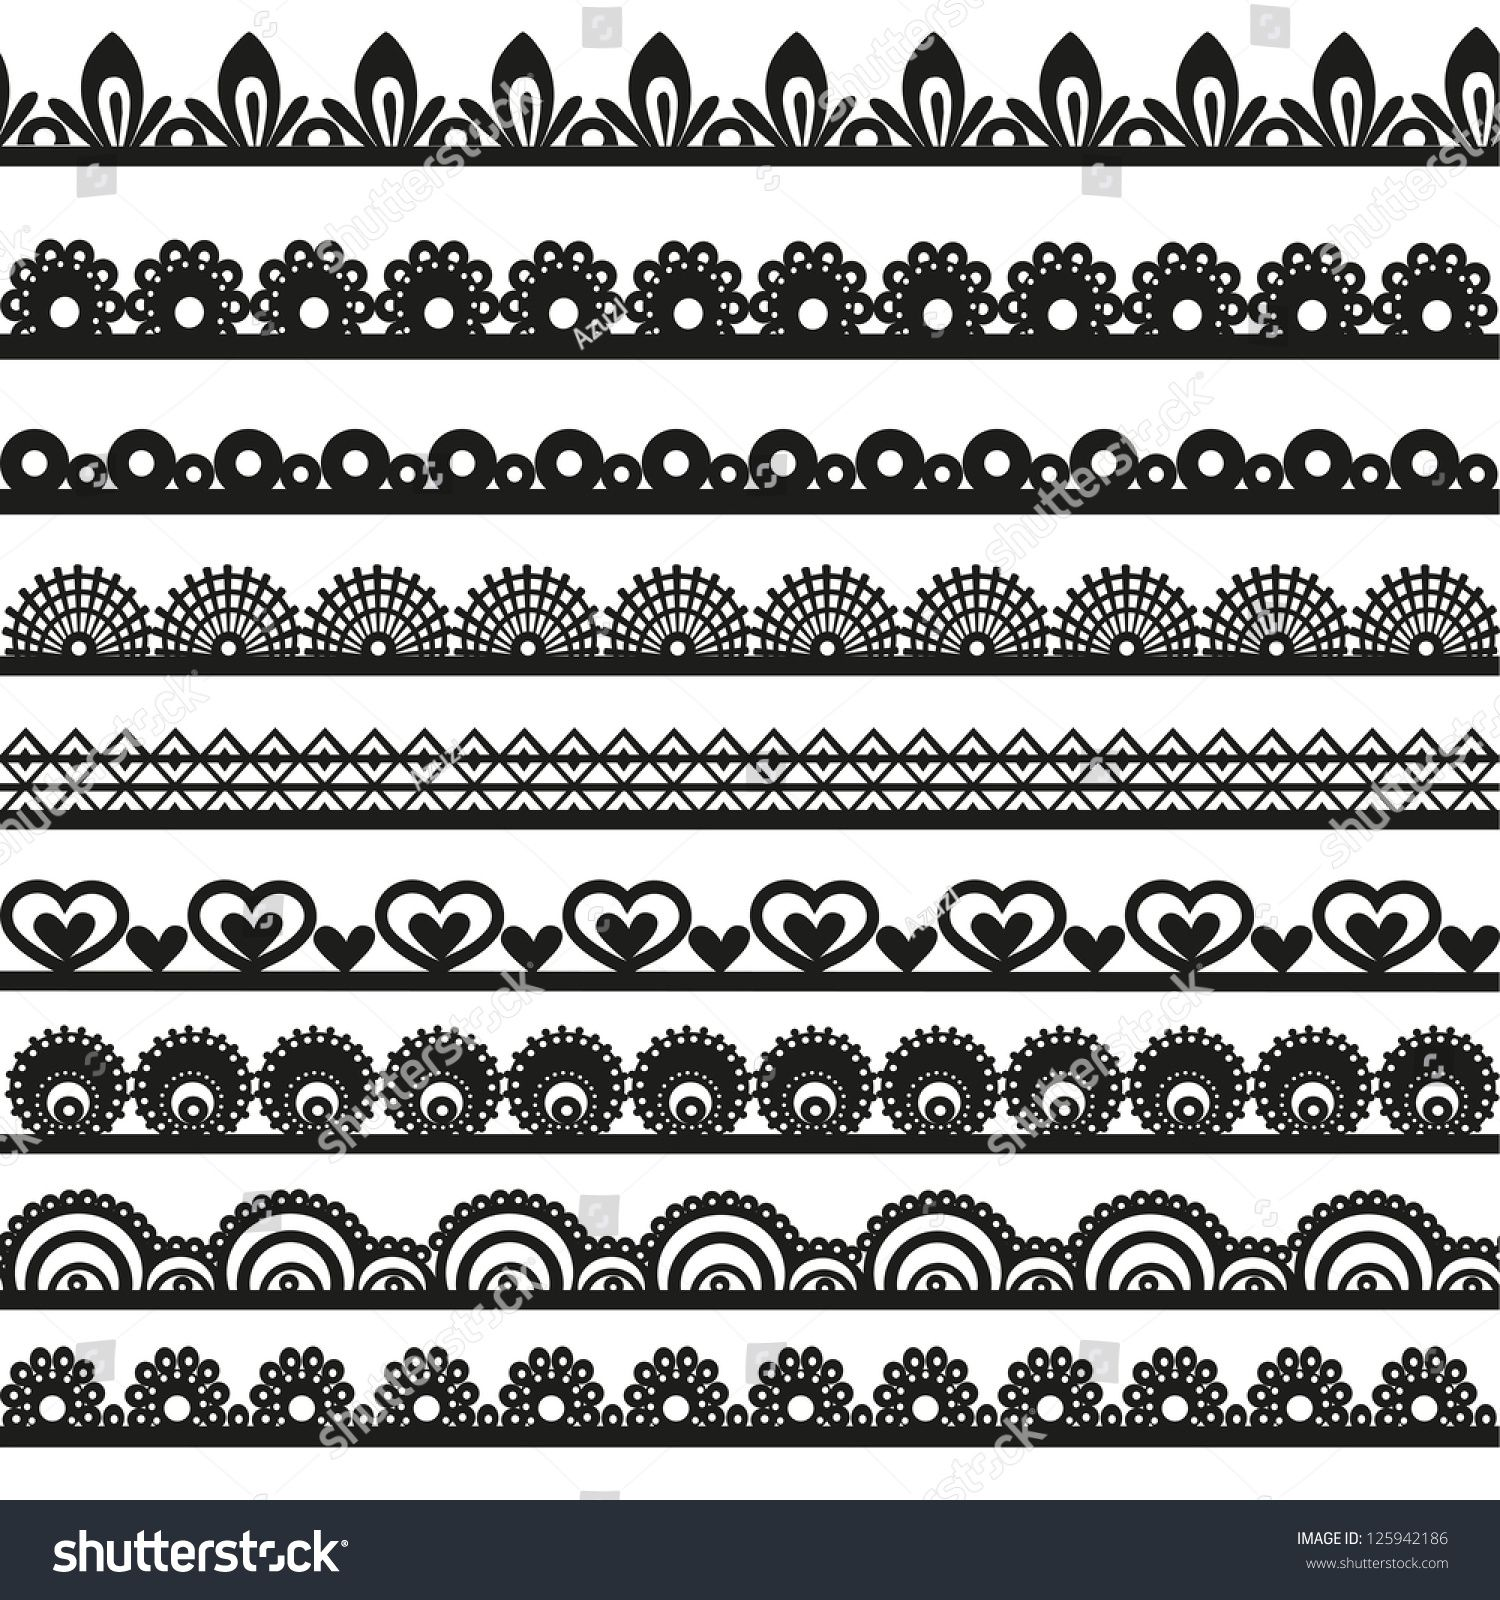 Large Set Of Openwork Lace Borders Black Silhouette For Your Design Spitzen Zeichnung Zentangle Muster Mandala Malvorlagen